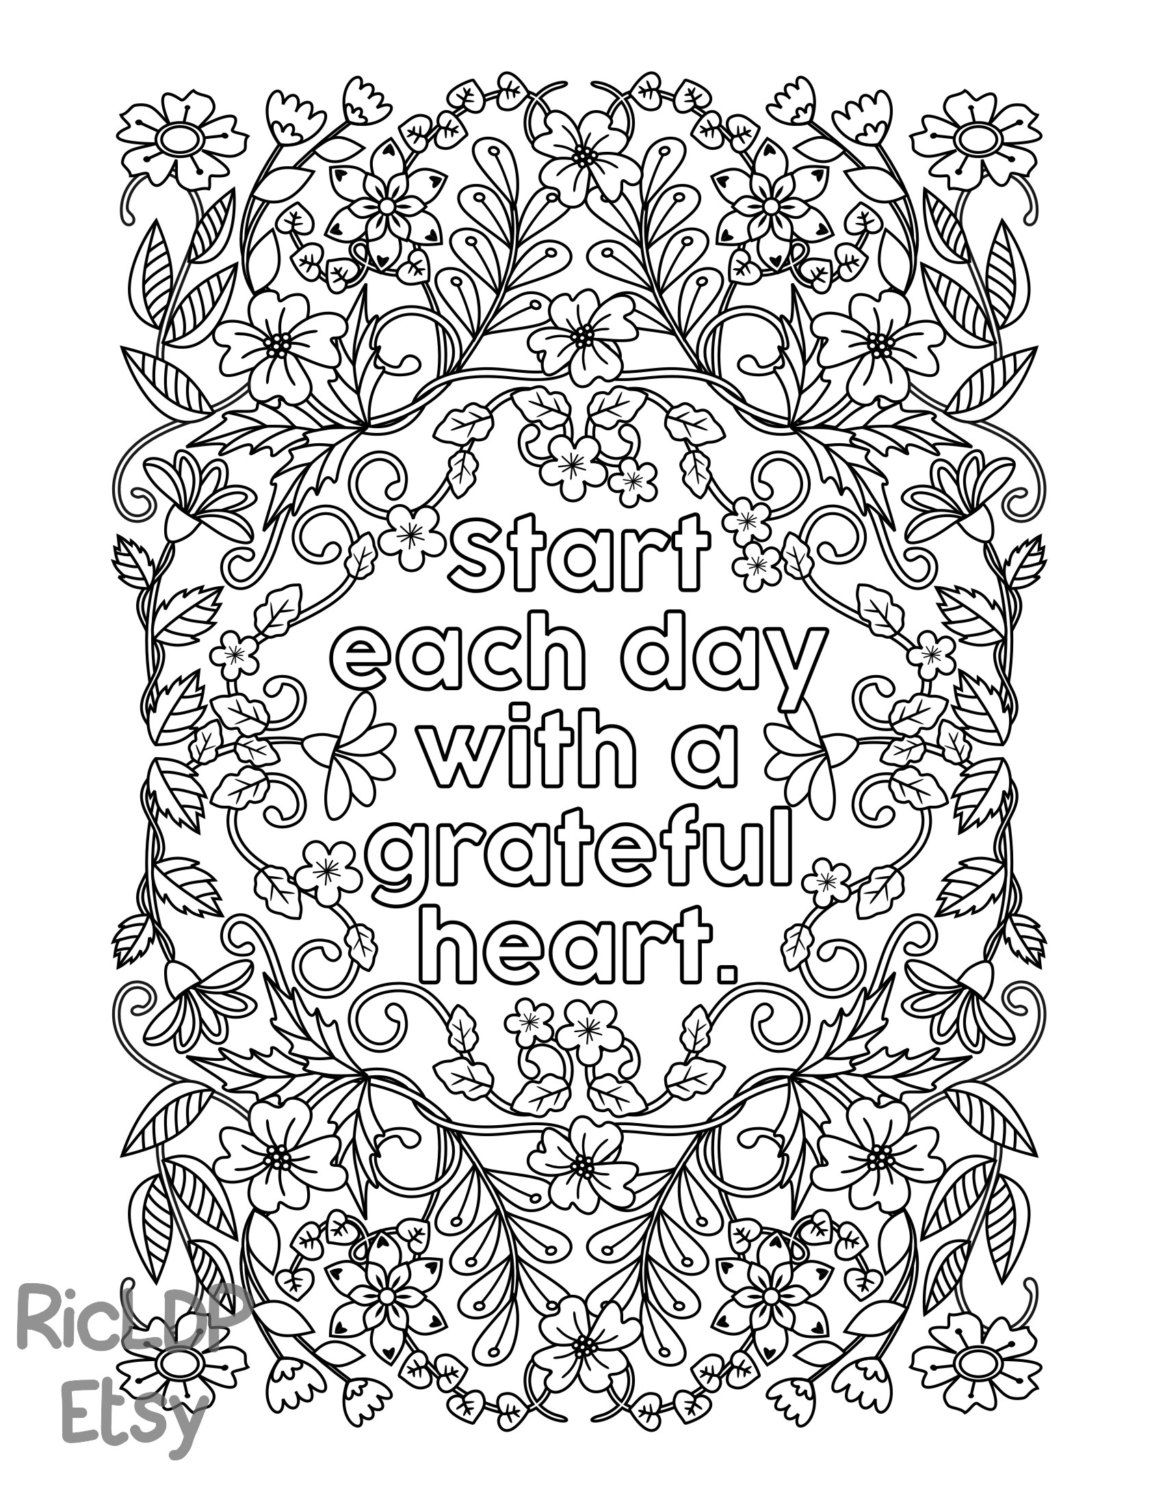 Start Each Day With A Grateful Heart - Adult Coloring Pages